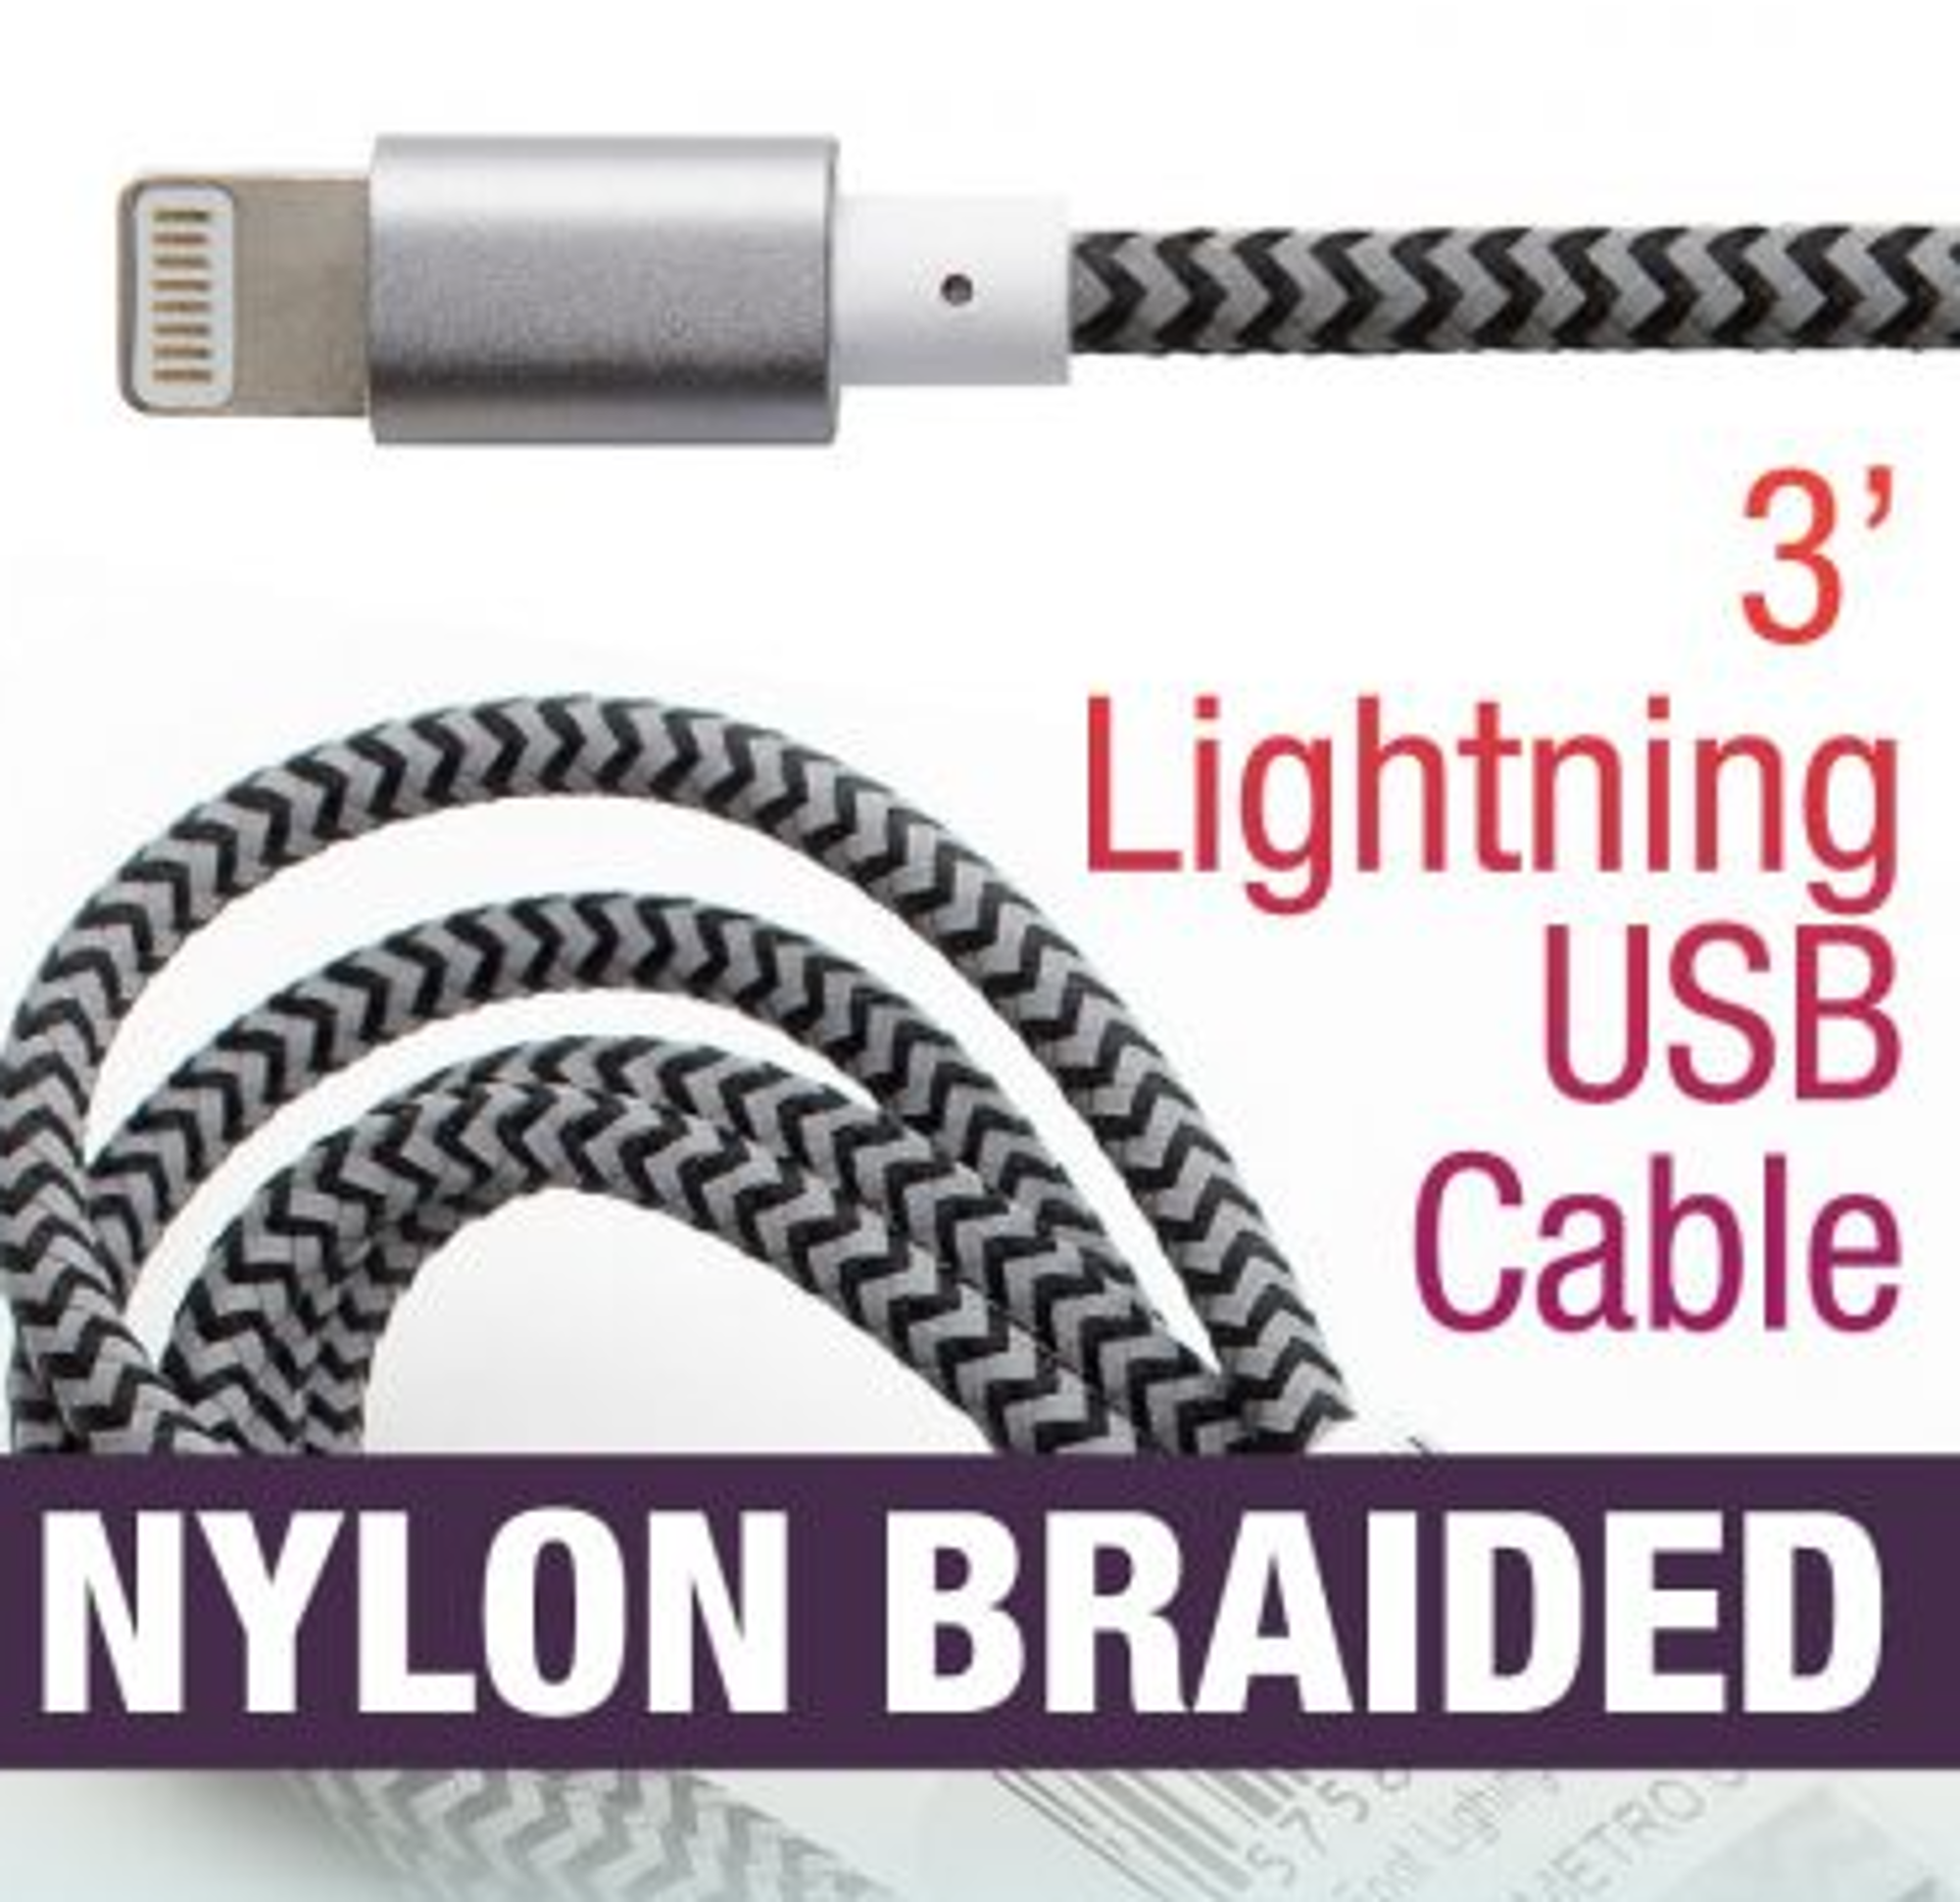 image of: 3' Nylon Braided Lightning Compatible Cable